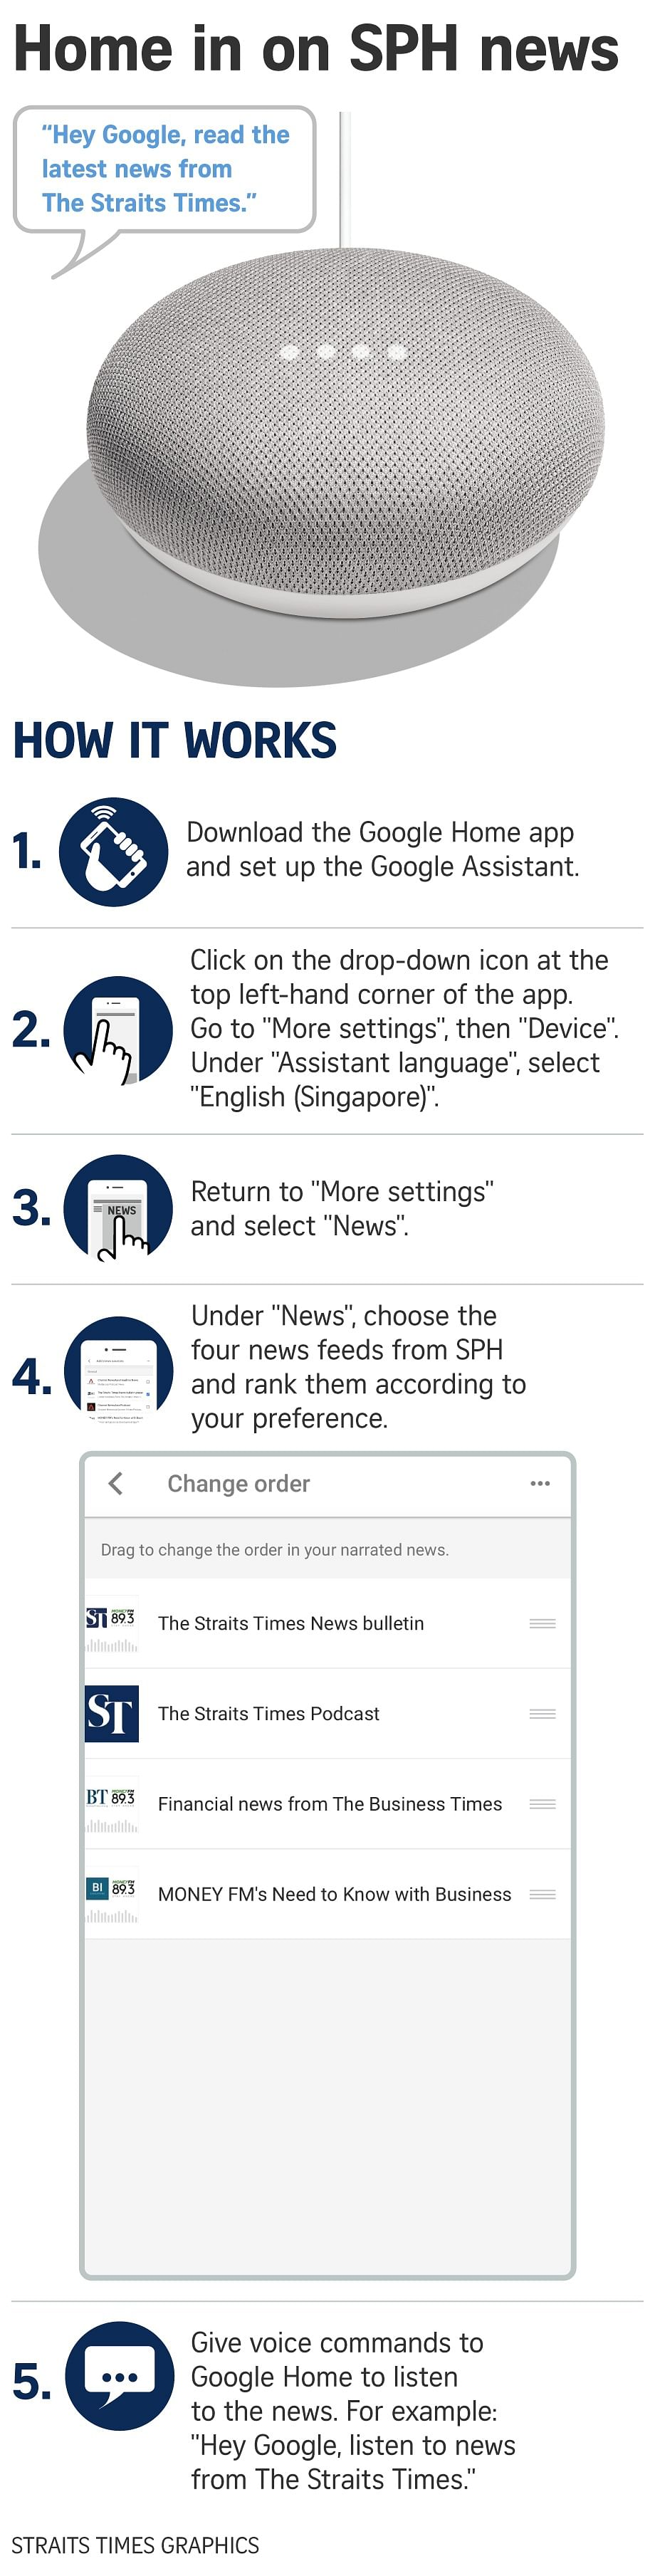 Listen to the news from The Straits Times on Google Home in